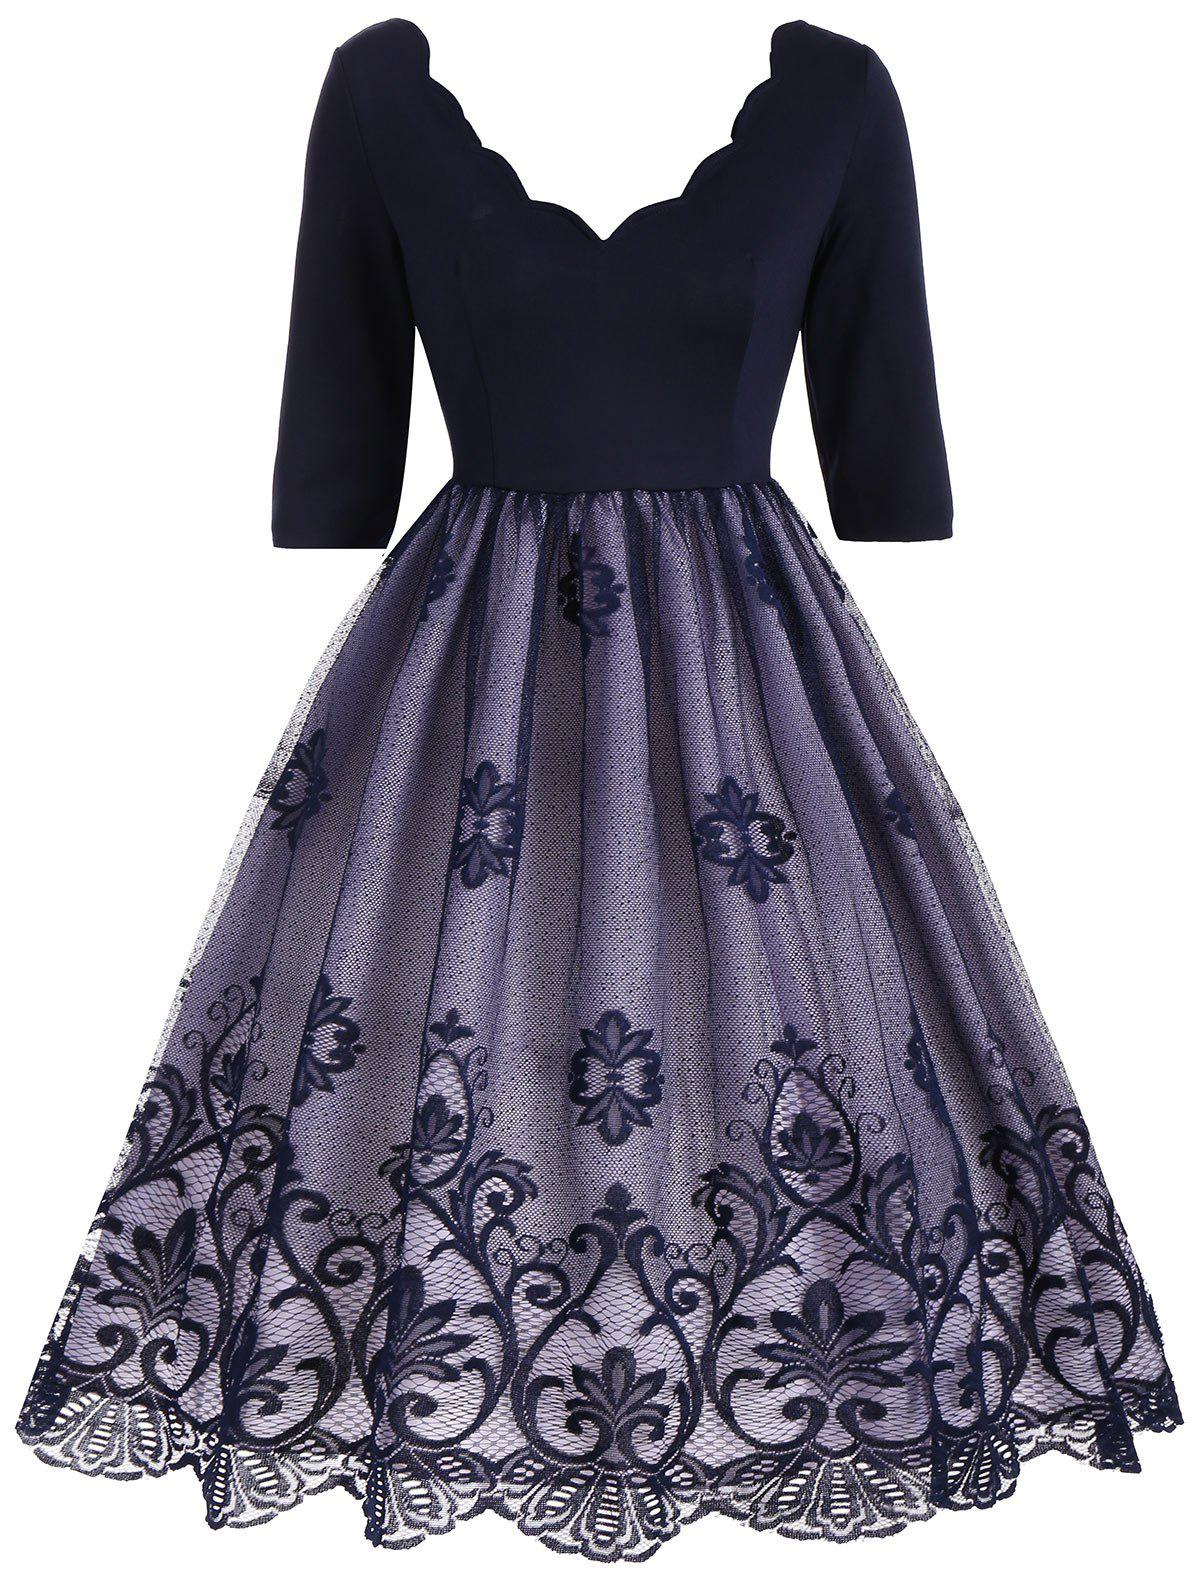 V Neck Floral Lace Panel Vintage DressWOMEN<br><br>Size: M; Color: DEEP BLUE; Style: Vintage; Material: Cotton,Polyester; Silhouette: A-Line; Dresses Length: Knee-Length; Neckline: V-Neck; Sleeve Length: Half Sleeves; Embellishment: Lace; Pattern Type: Solid; With Belt: No; Season: Fall; Weight: 0.3800kg; Package Contents: 1 x Dress;